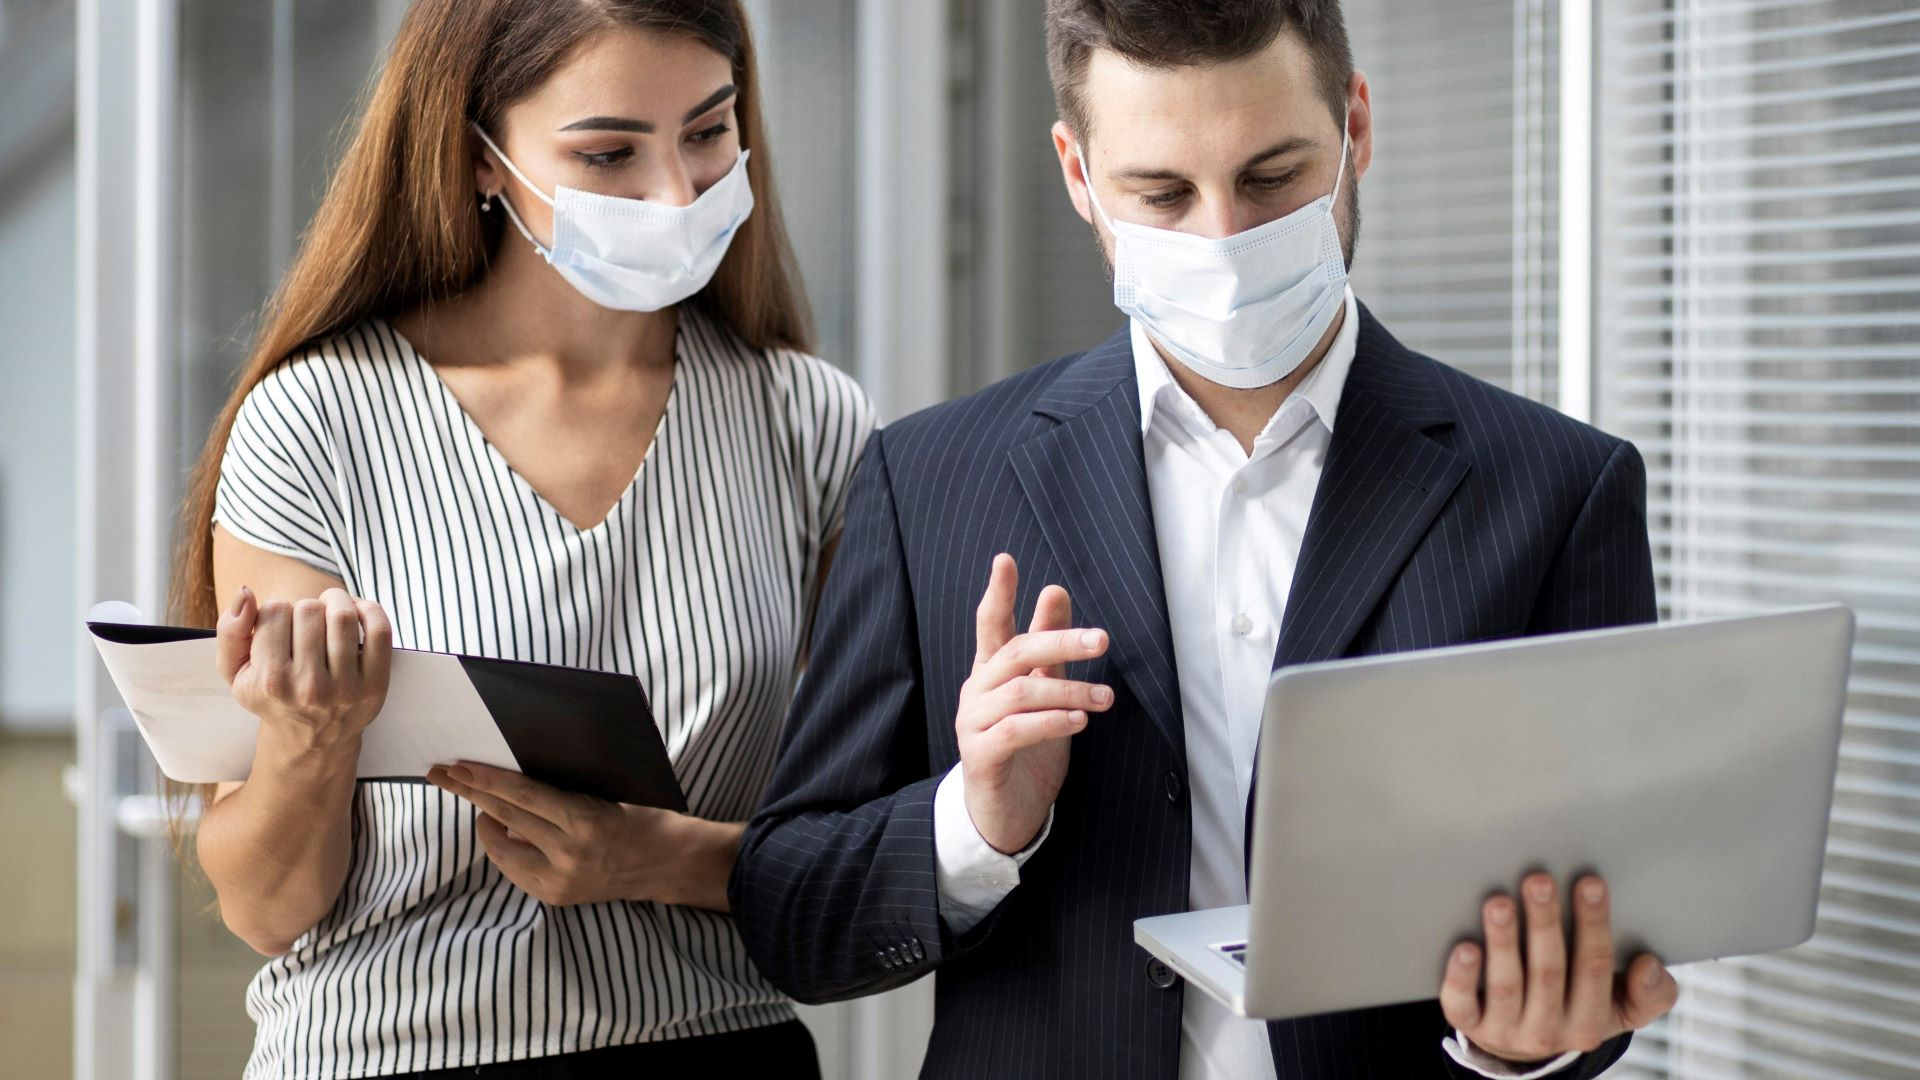 Colleagues watching a company video during COVID-19 wearing surgical masks